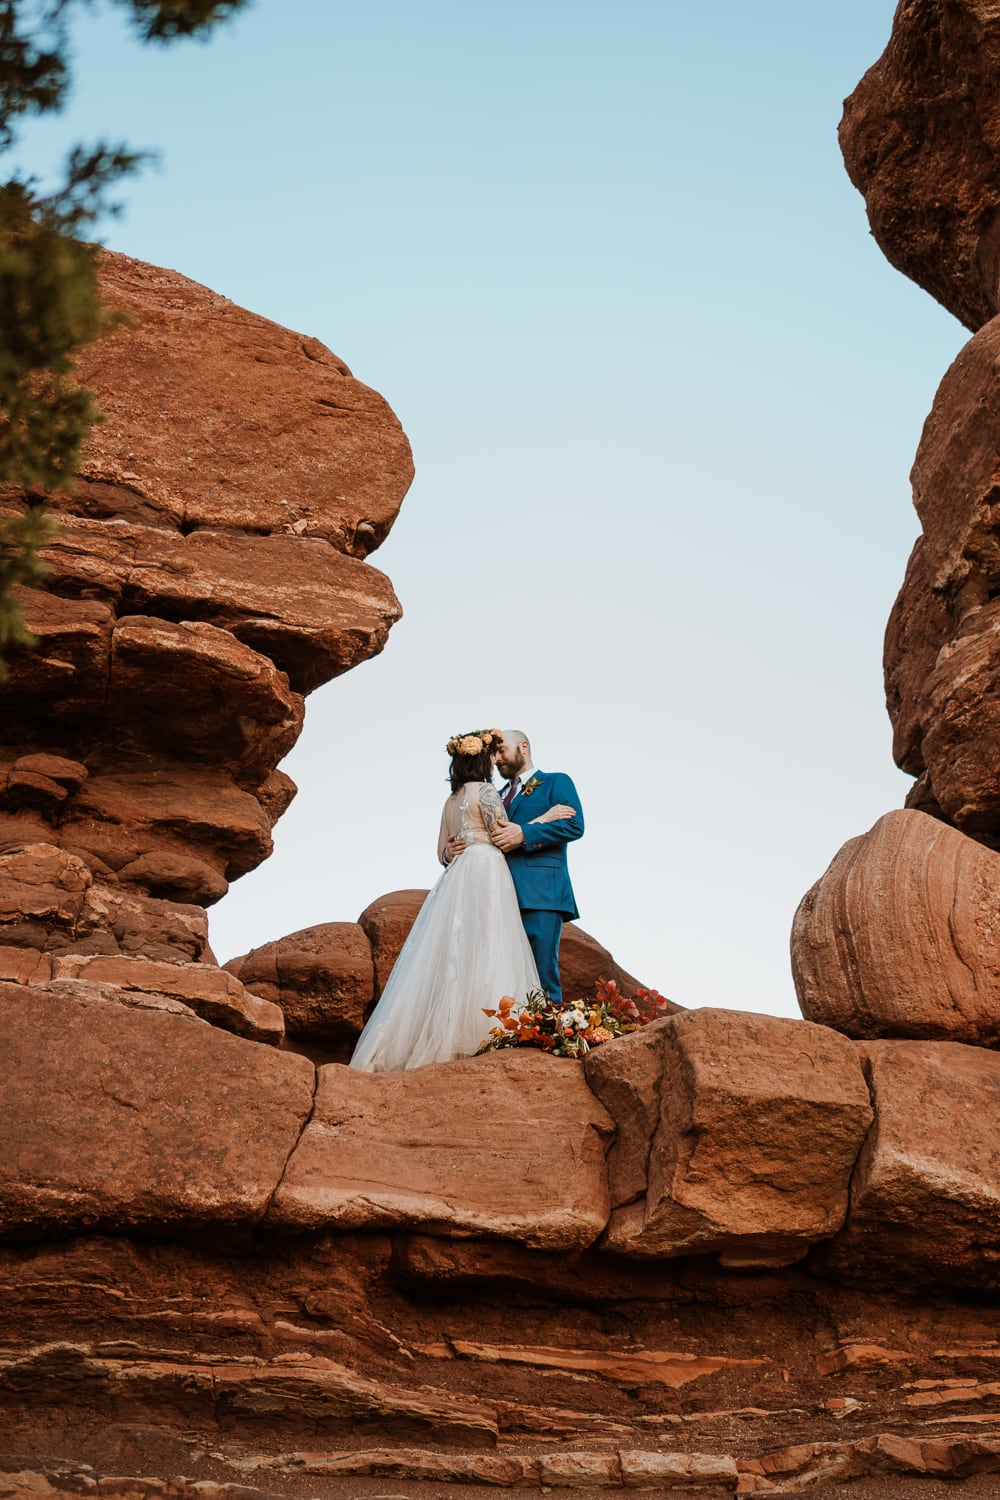 This bride and groom reached out about how to plan an elopement and we picked Garden of the Gods for their ceremony location